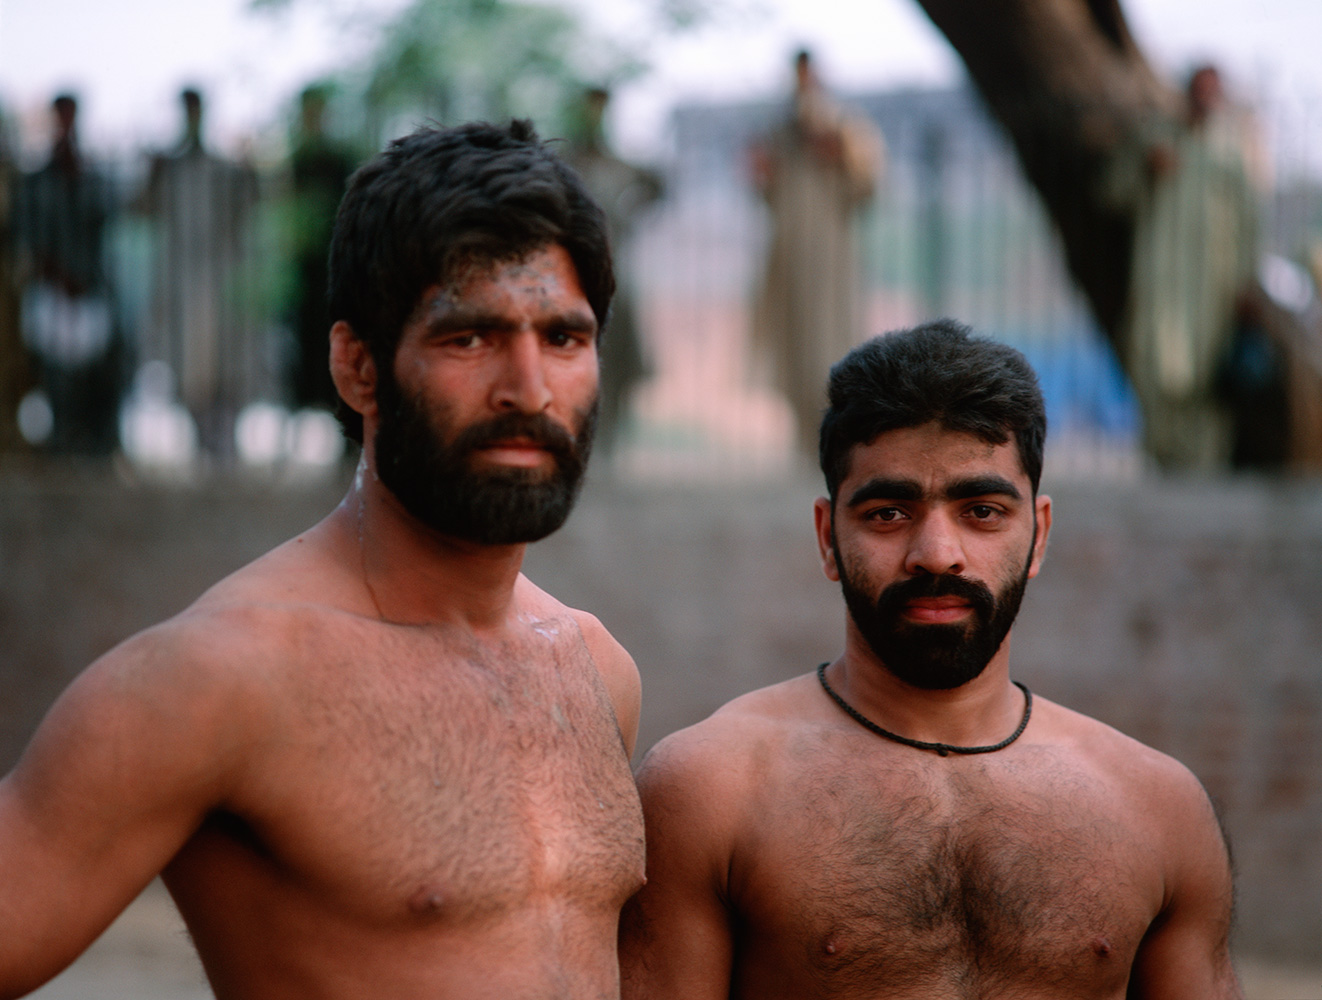 Wrestlers  training in the Hazuri Bagh, Lahore. Wrestling, or koshti, has been practiced in Pakistan since ancient times, and here in the Punjab it is known as Pehlwani.Bronica ETRS, 50mm, Fuji Velvia